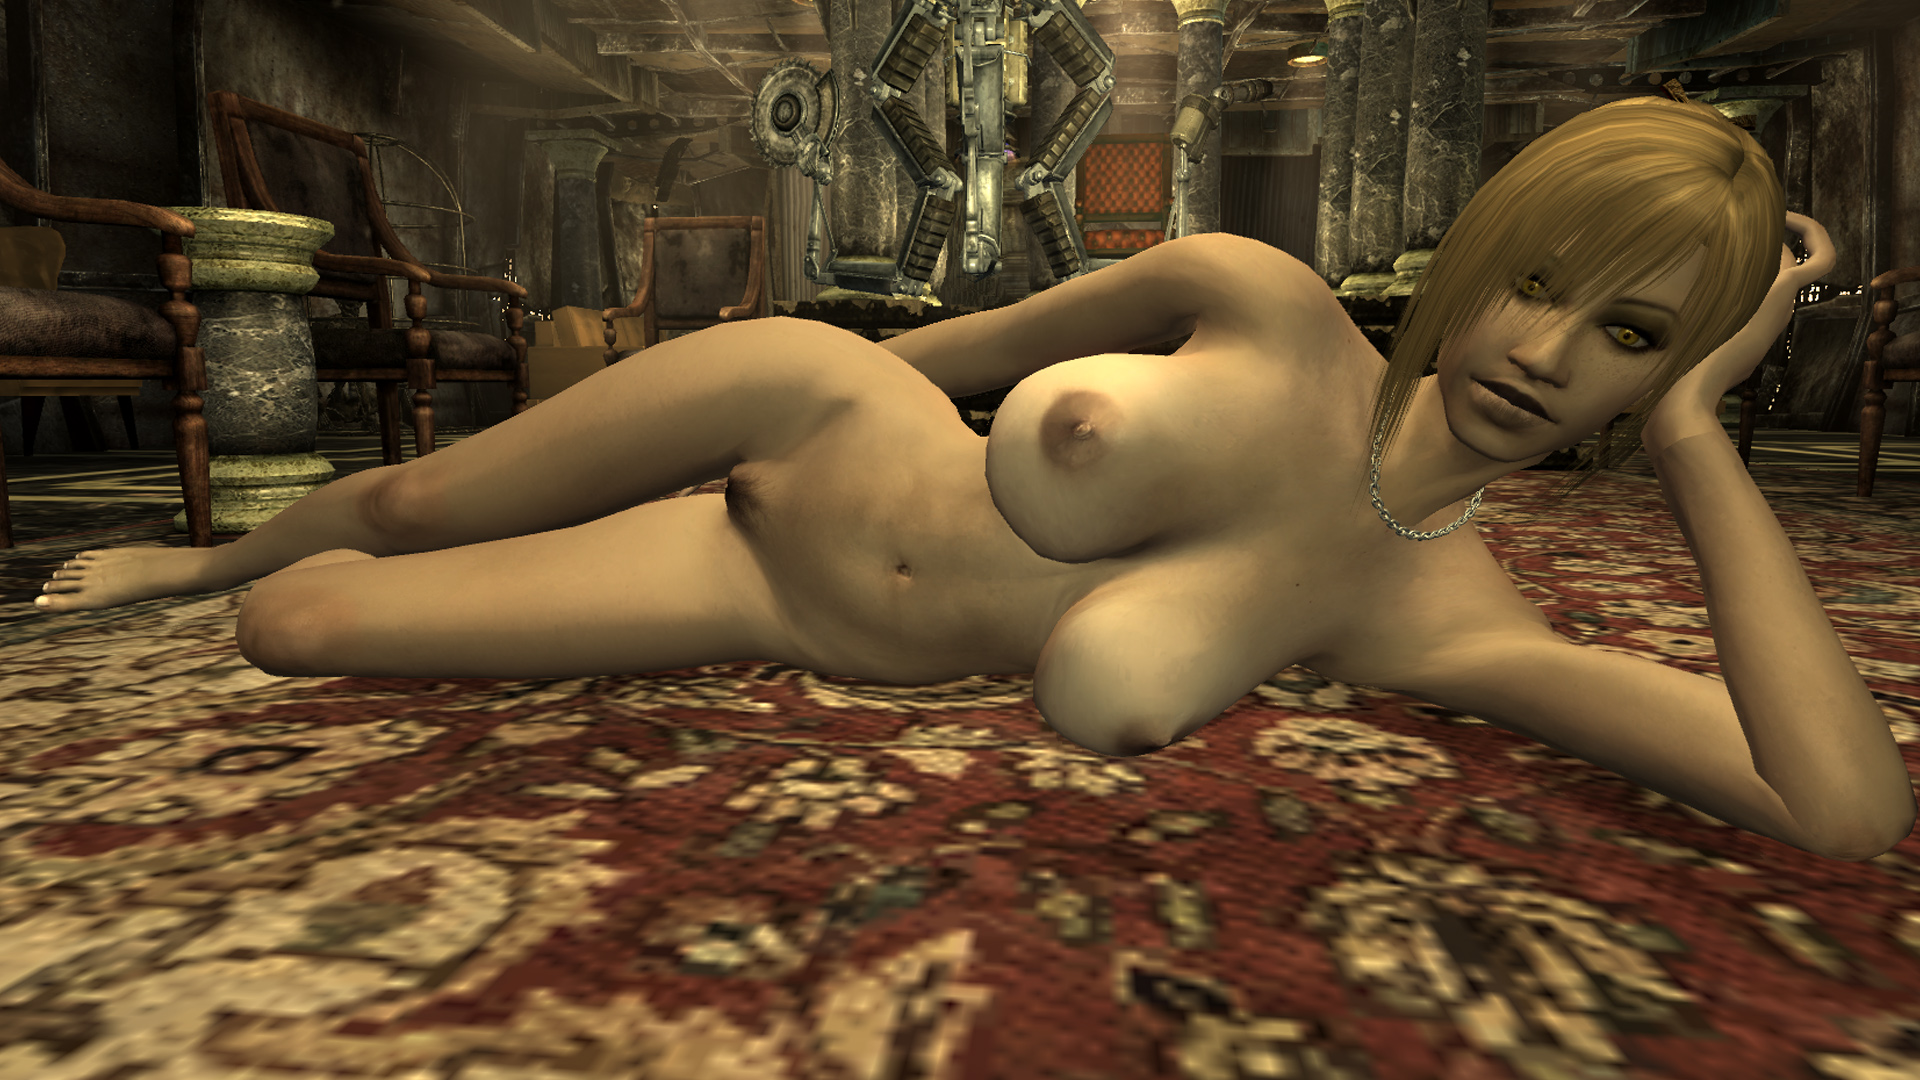 Fable 2 boobs mod fucking pictures